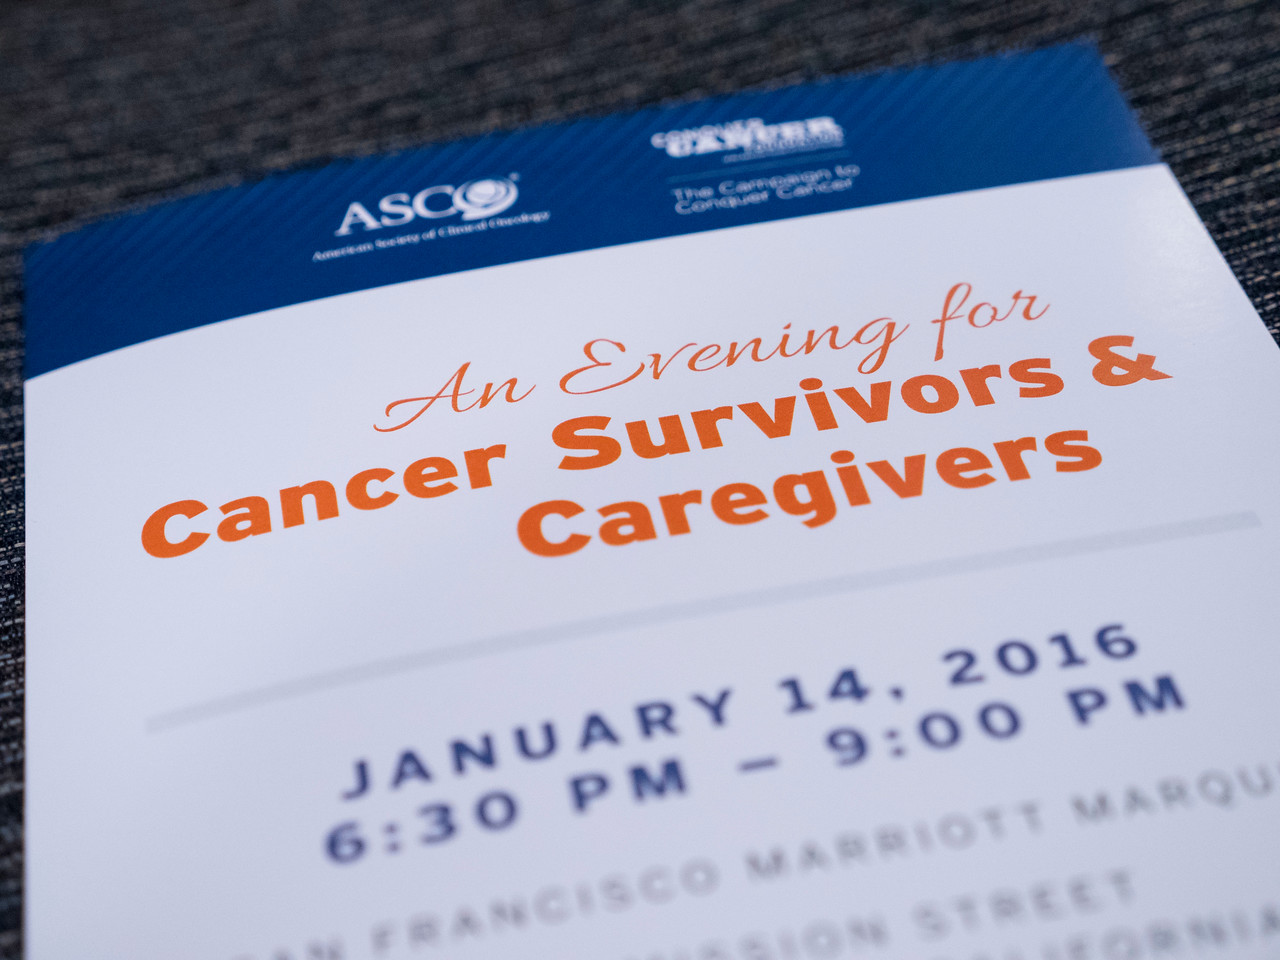 An Evening for Cancer Survivors and Caregivers